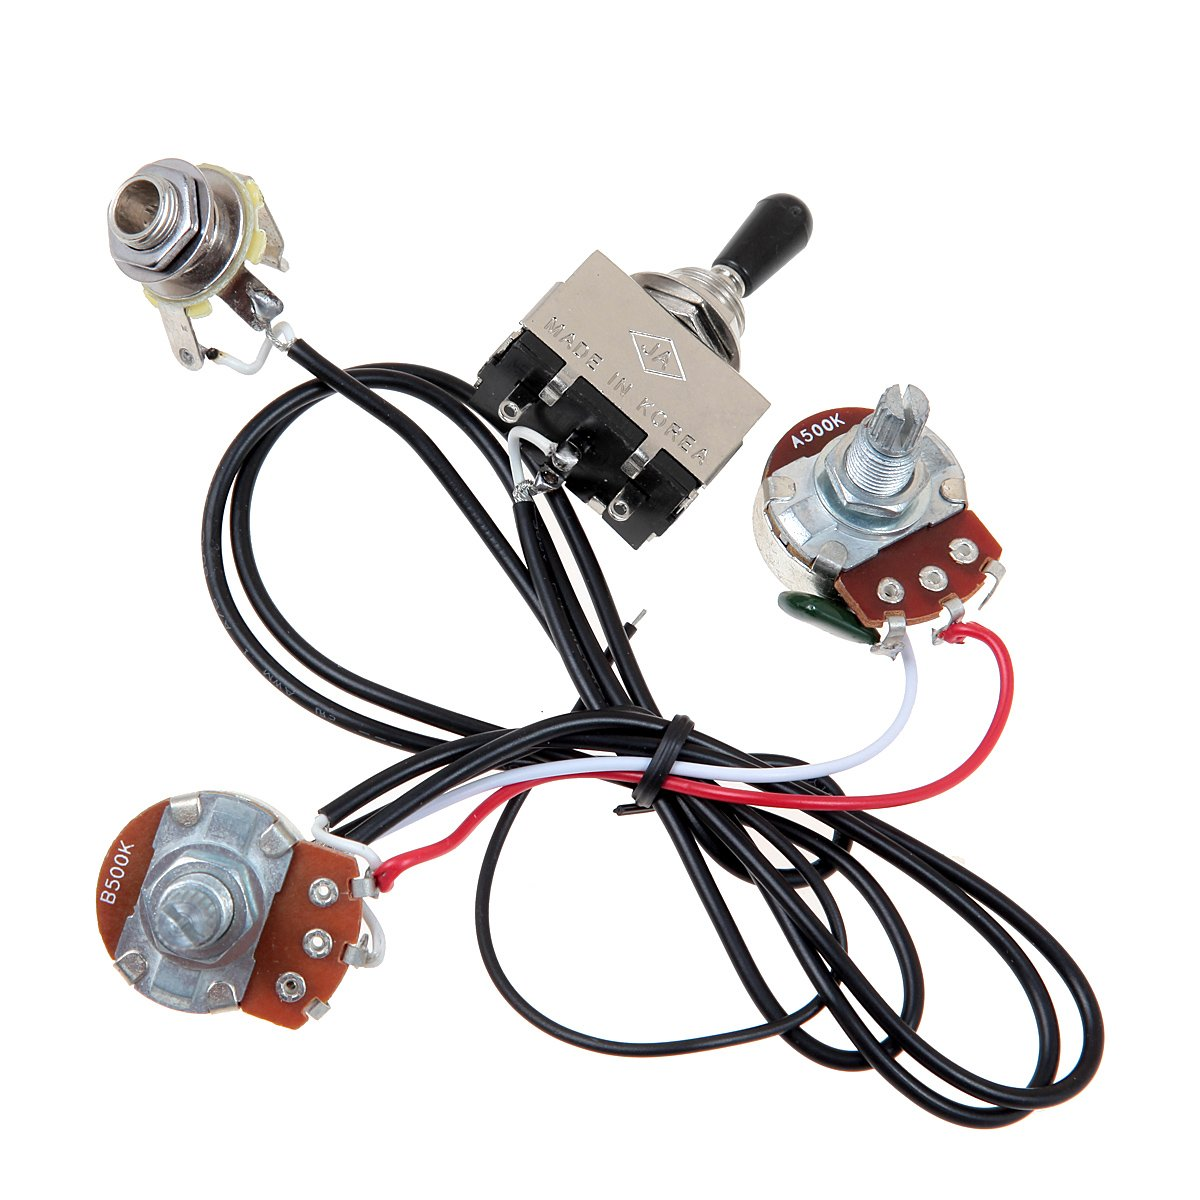 71%2BaA7TOd1L._SL1200_ amazon com kmise mi0321 guitar wiring harness prewired two pickup toggle switch wiring harness at readyjetset.co